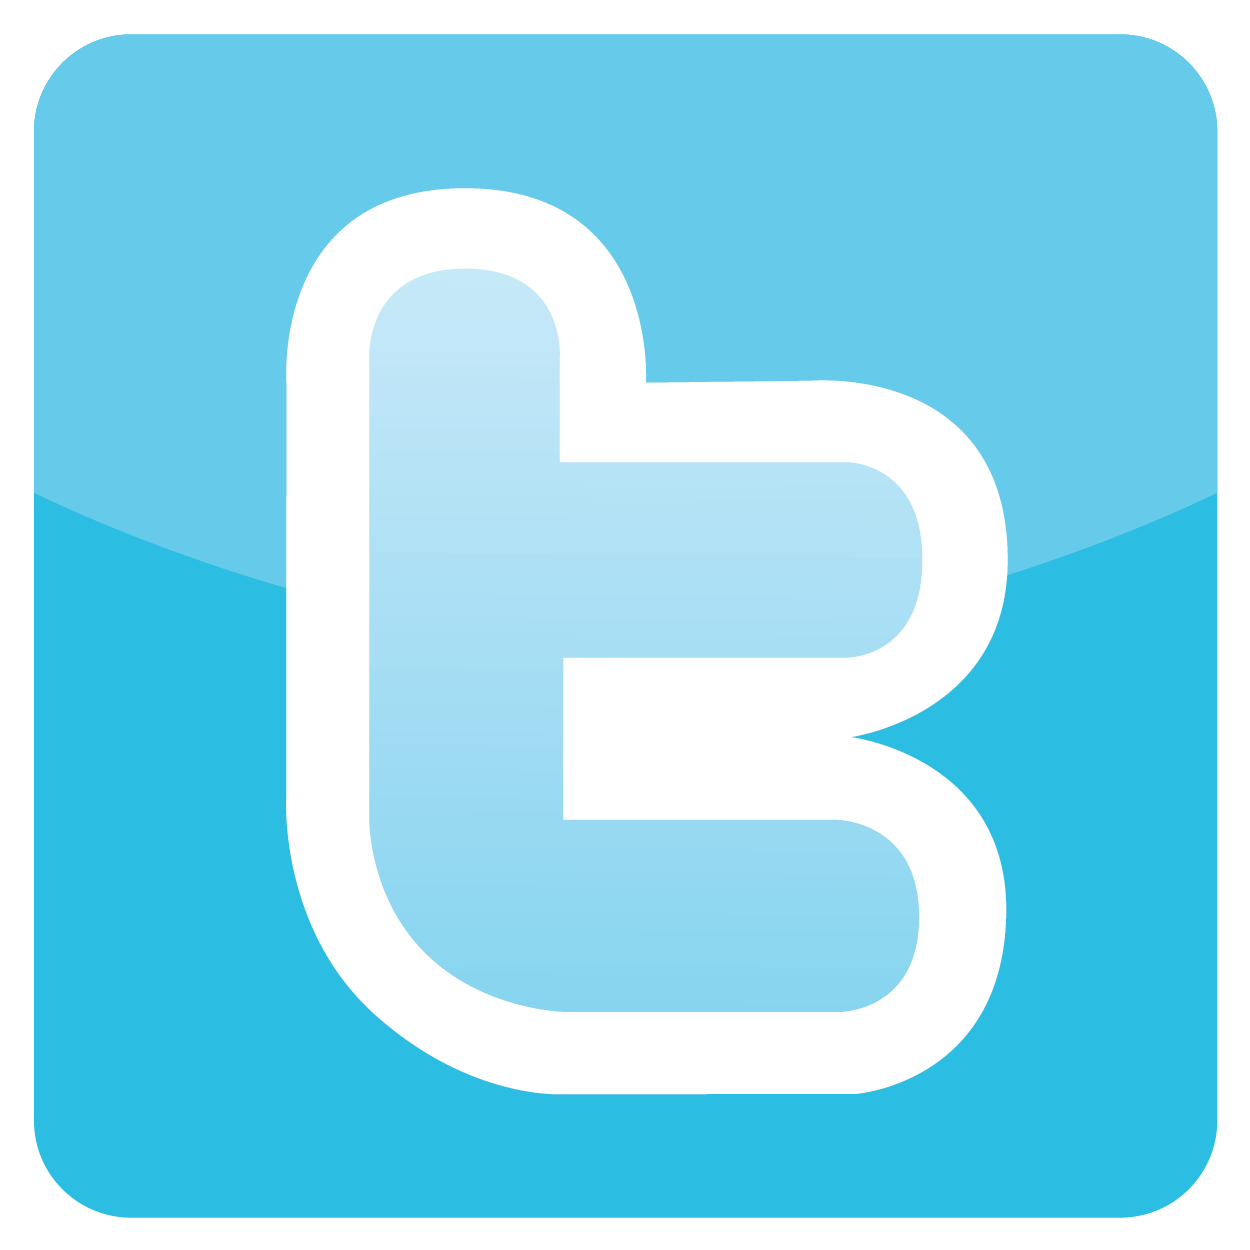 Twitter Logo Icon Vector and Adobe Illustrator file: jonbennallick.co.uk